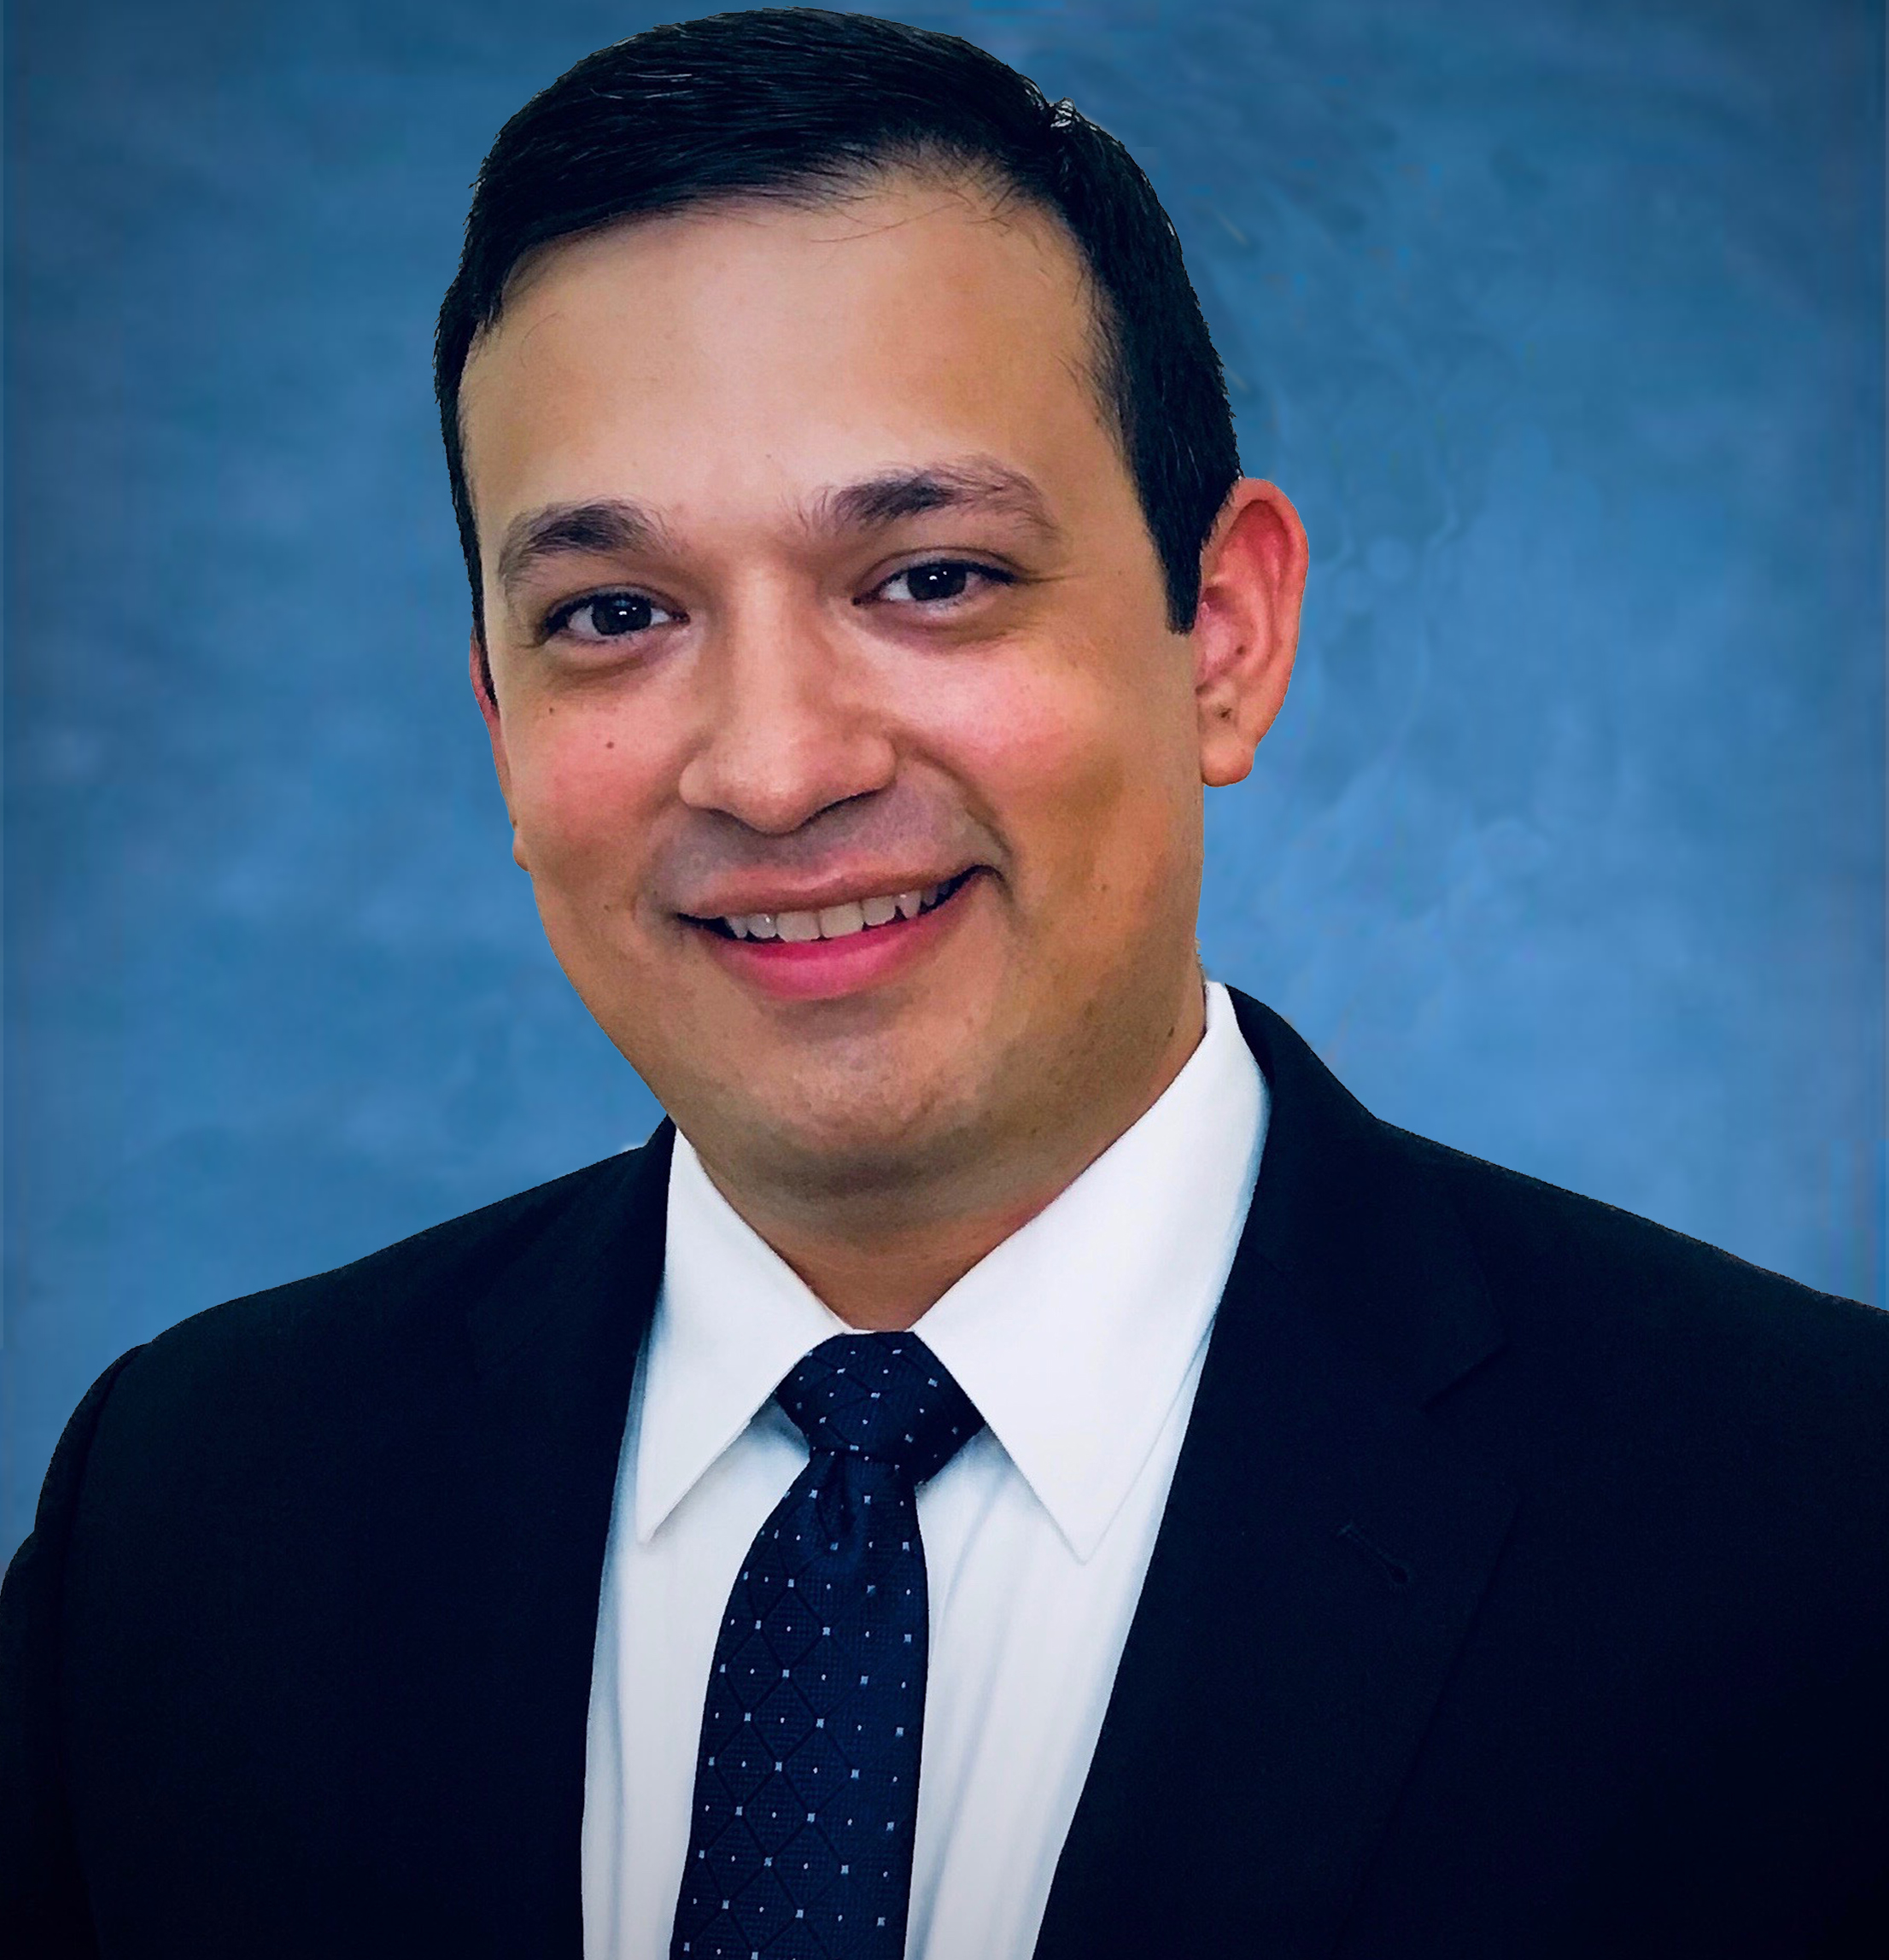 Headshot of Arturo Villarreal, MD.